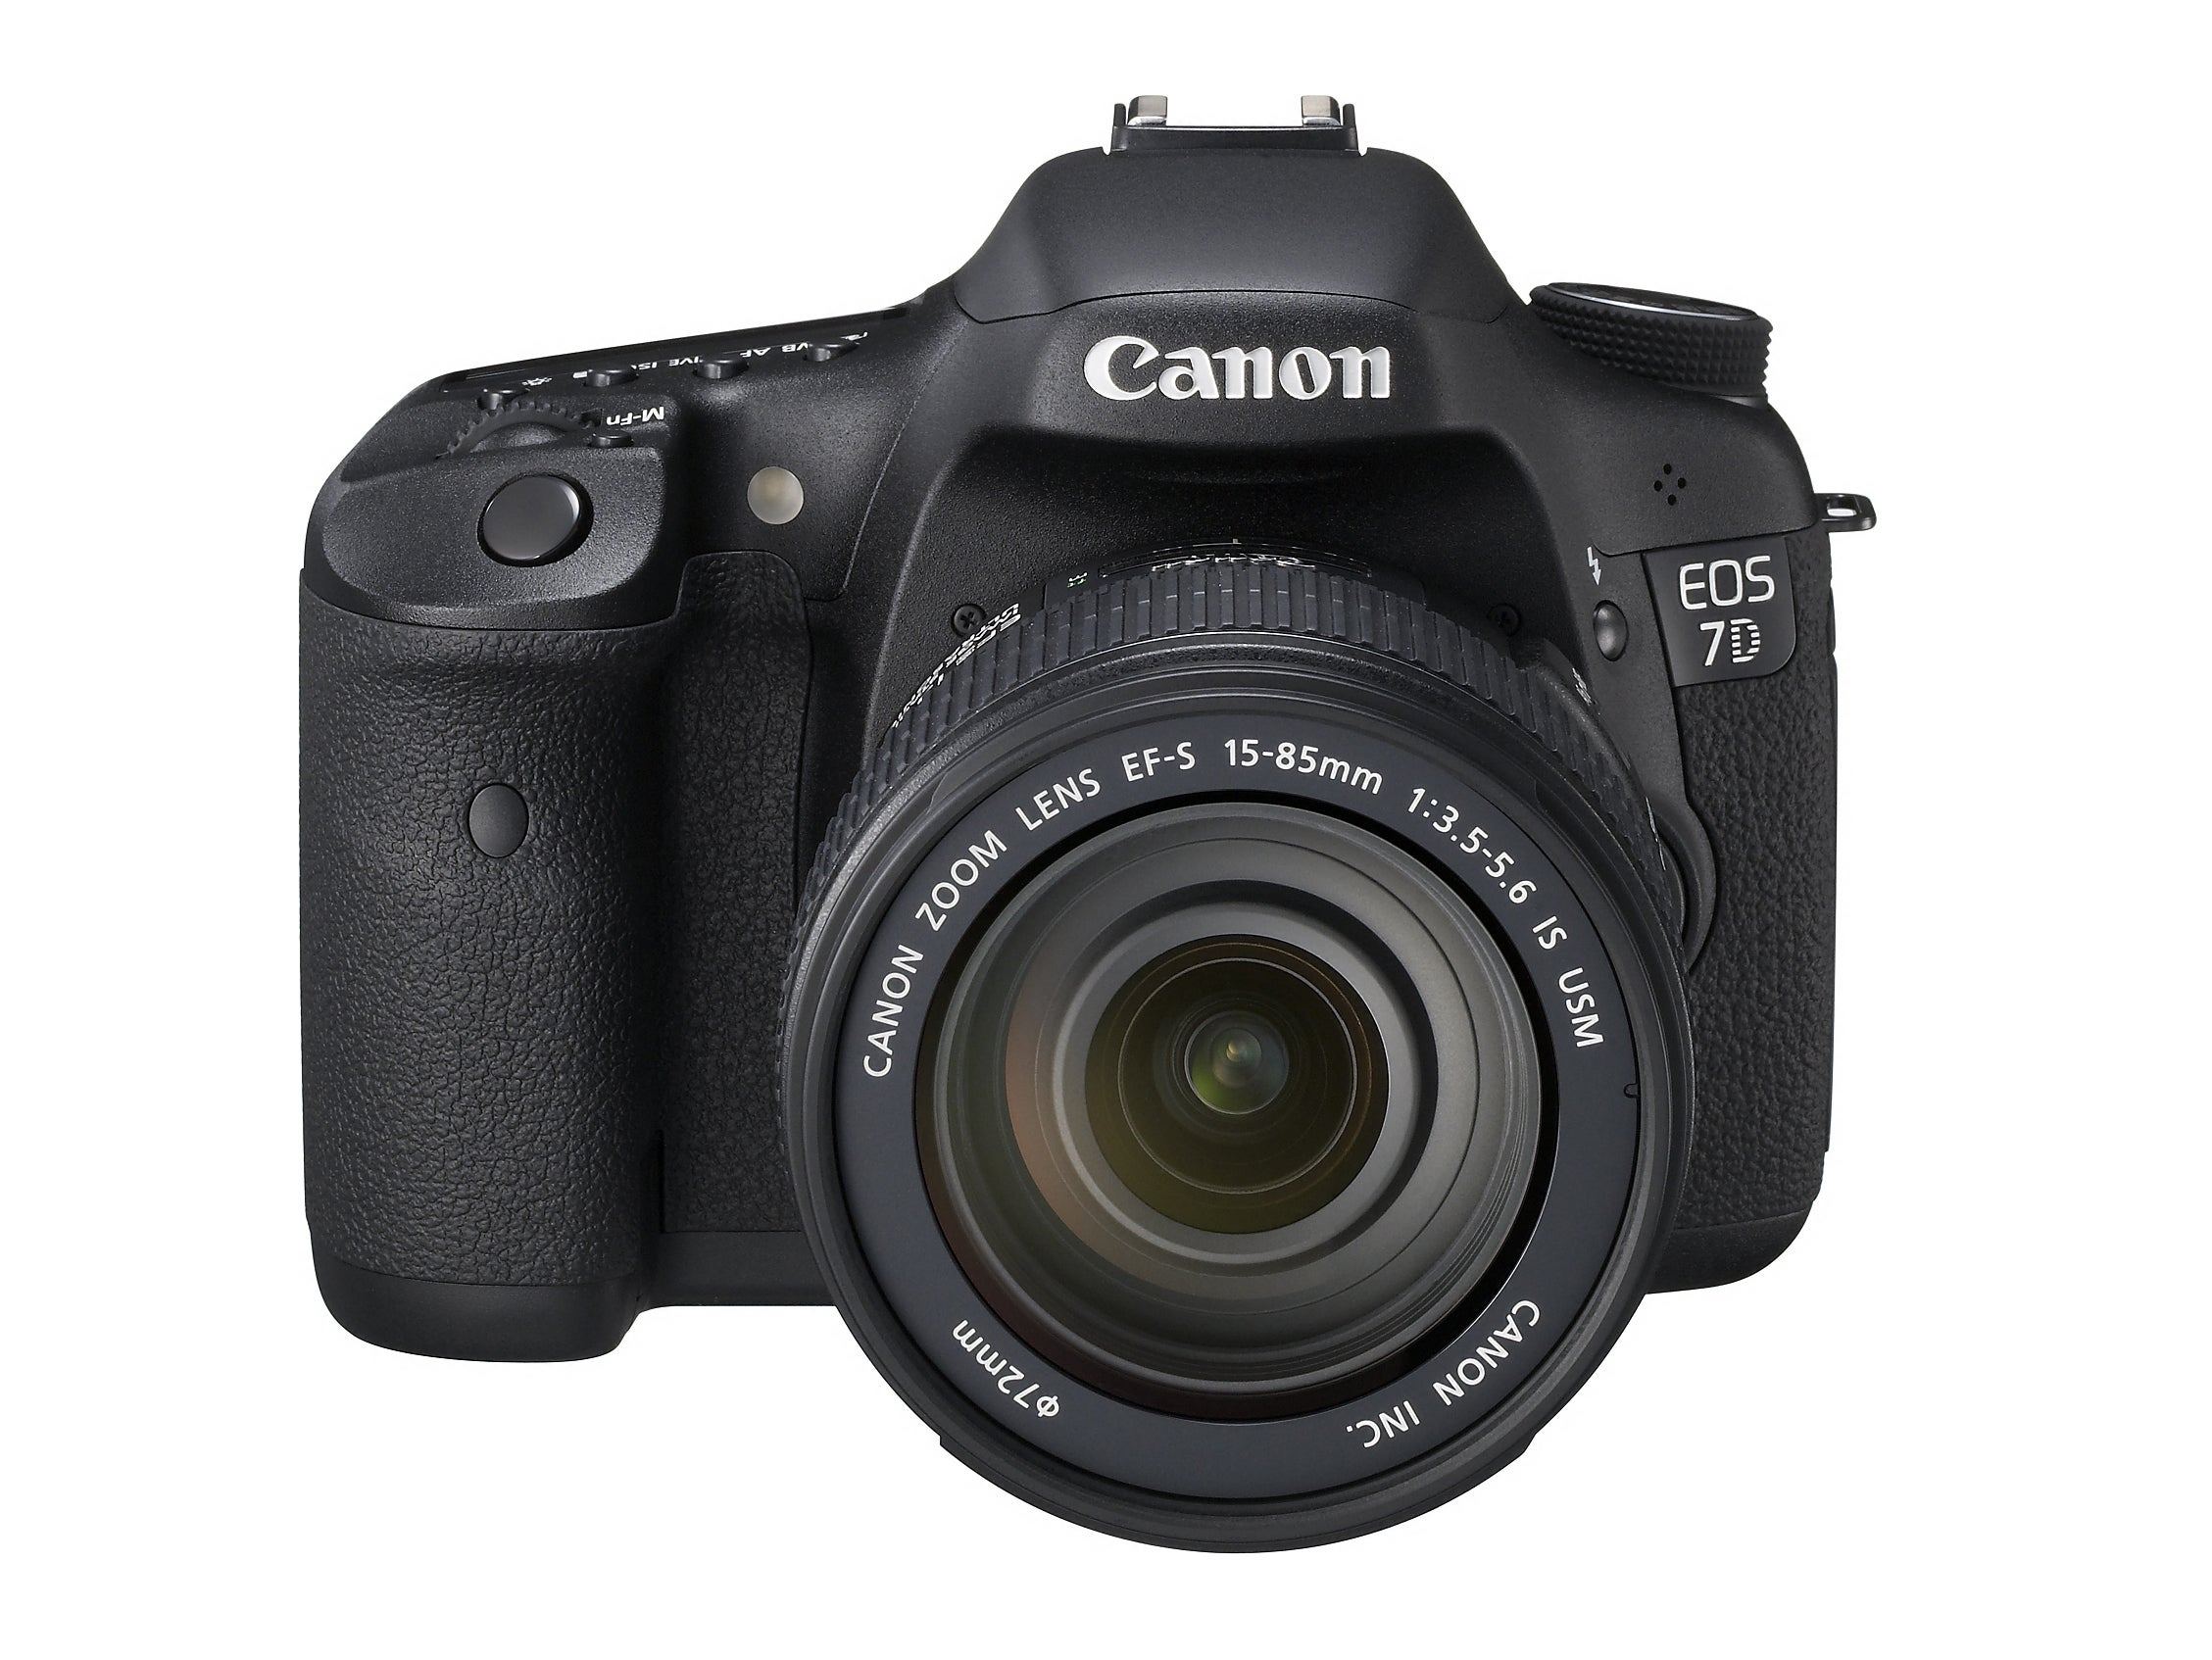 Canon EOS 7D front view